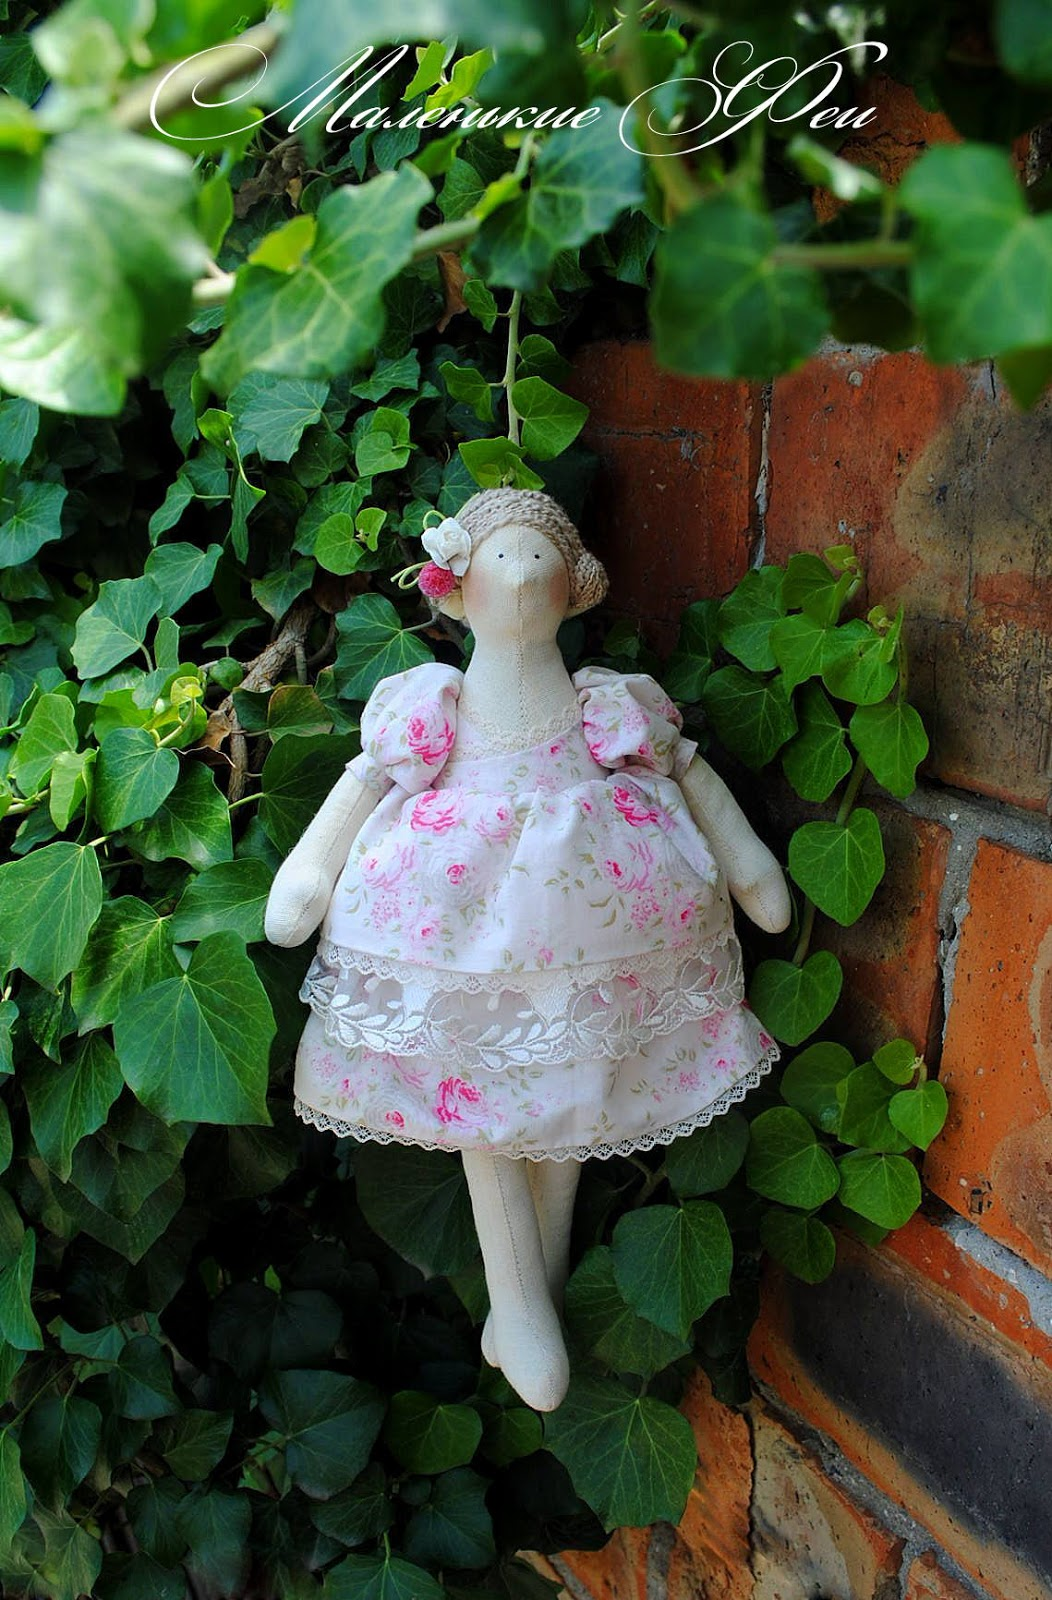 newborn, kids, baby, gift, sewing, pink, girl, kids, buy, handmade, natural, fairy, fairies, beautiful, doll, tilde, cotton, lace, flowers, ivy, girl gift, a gift to mum